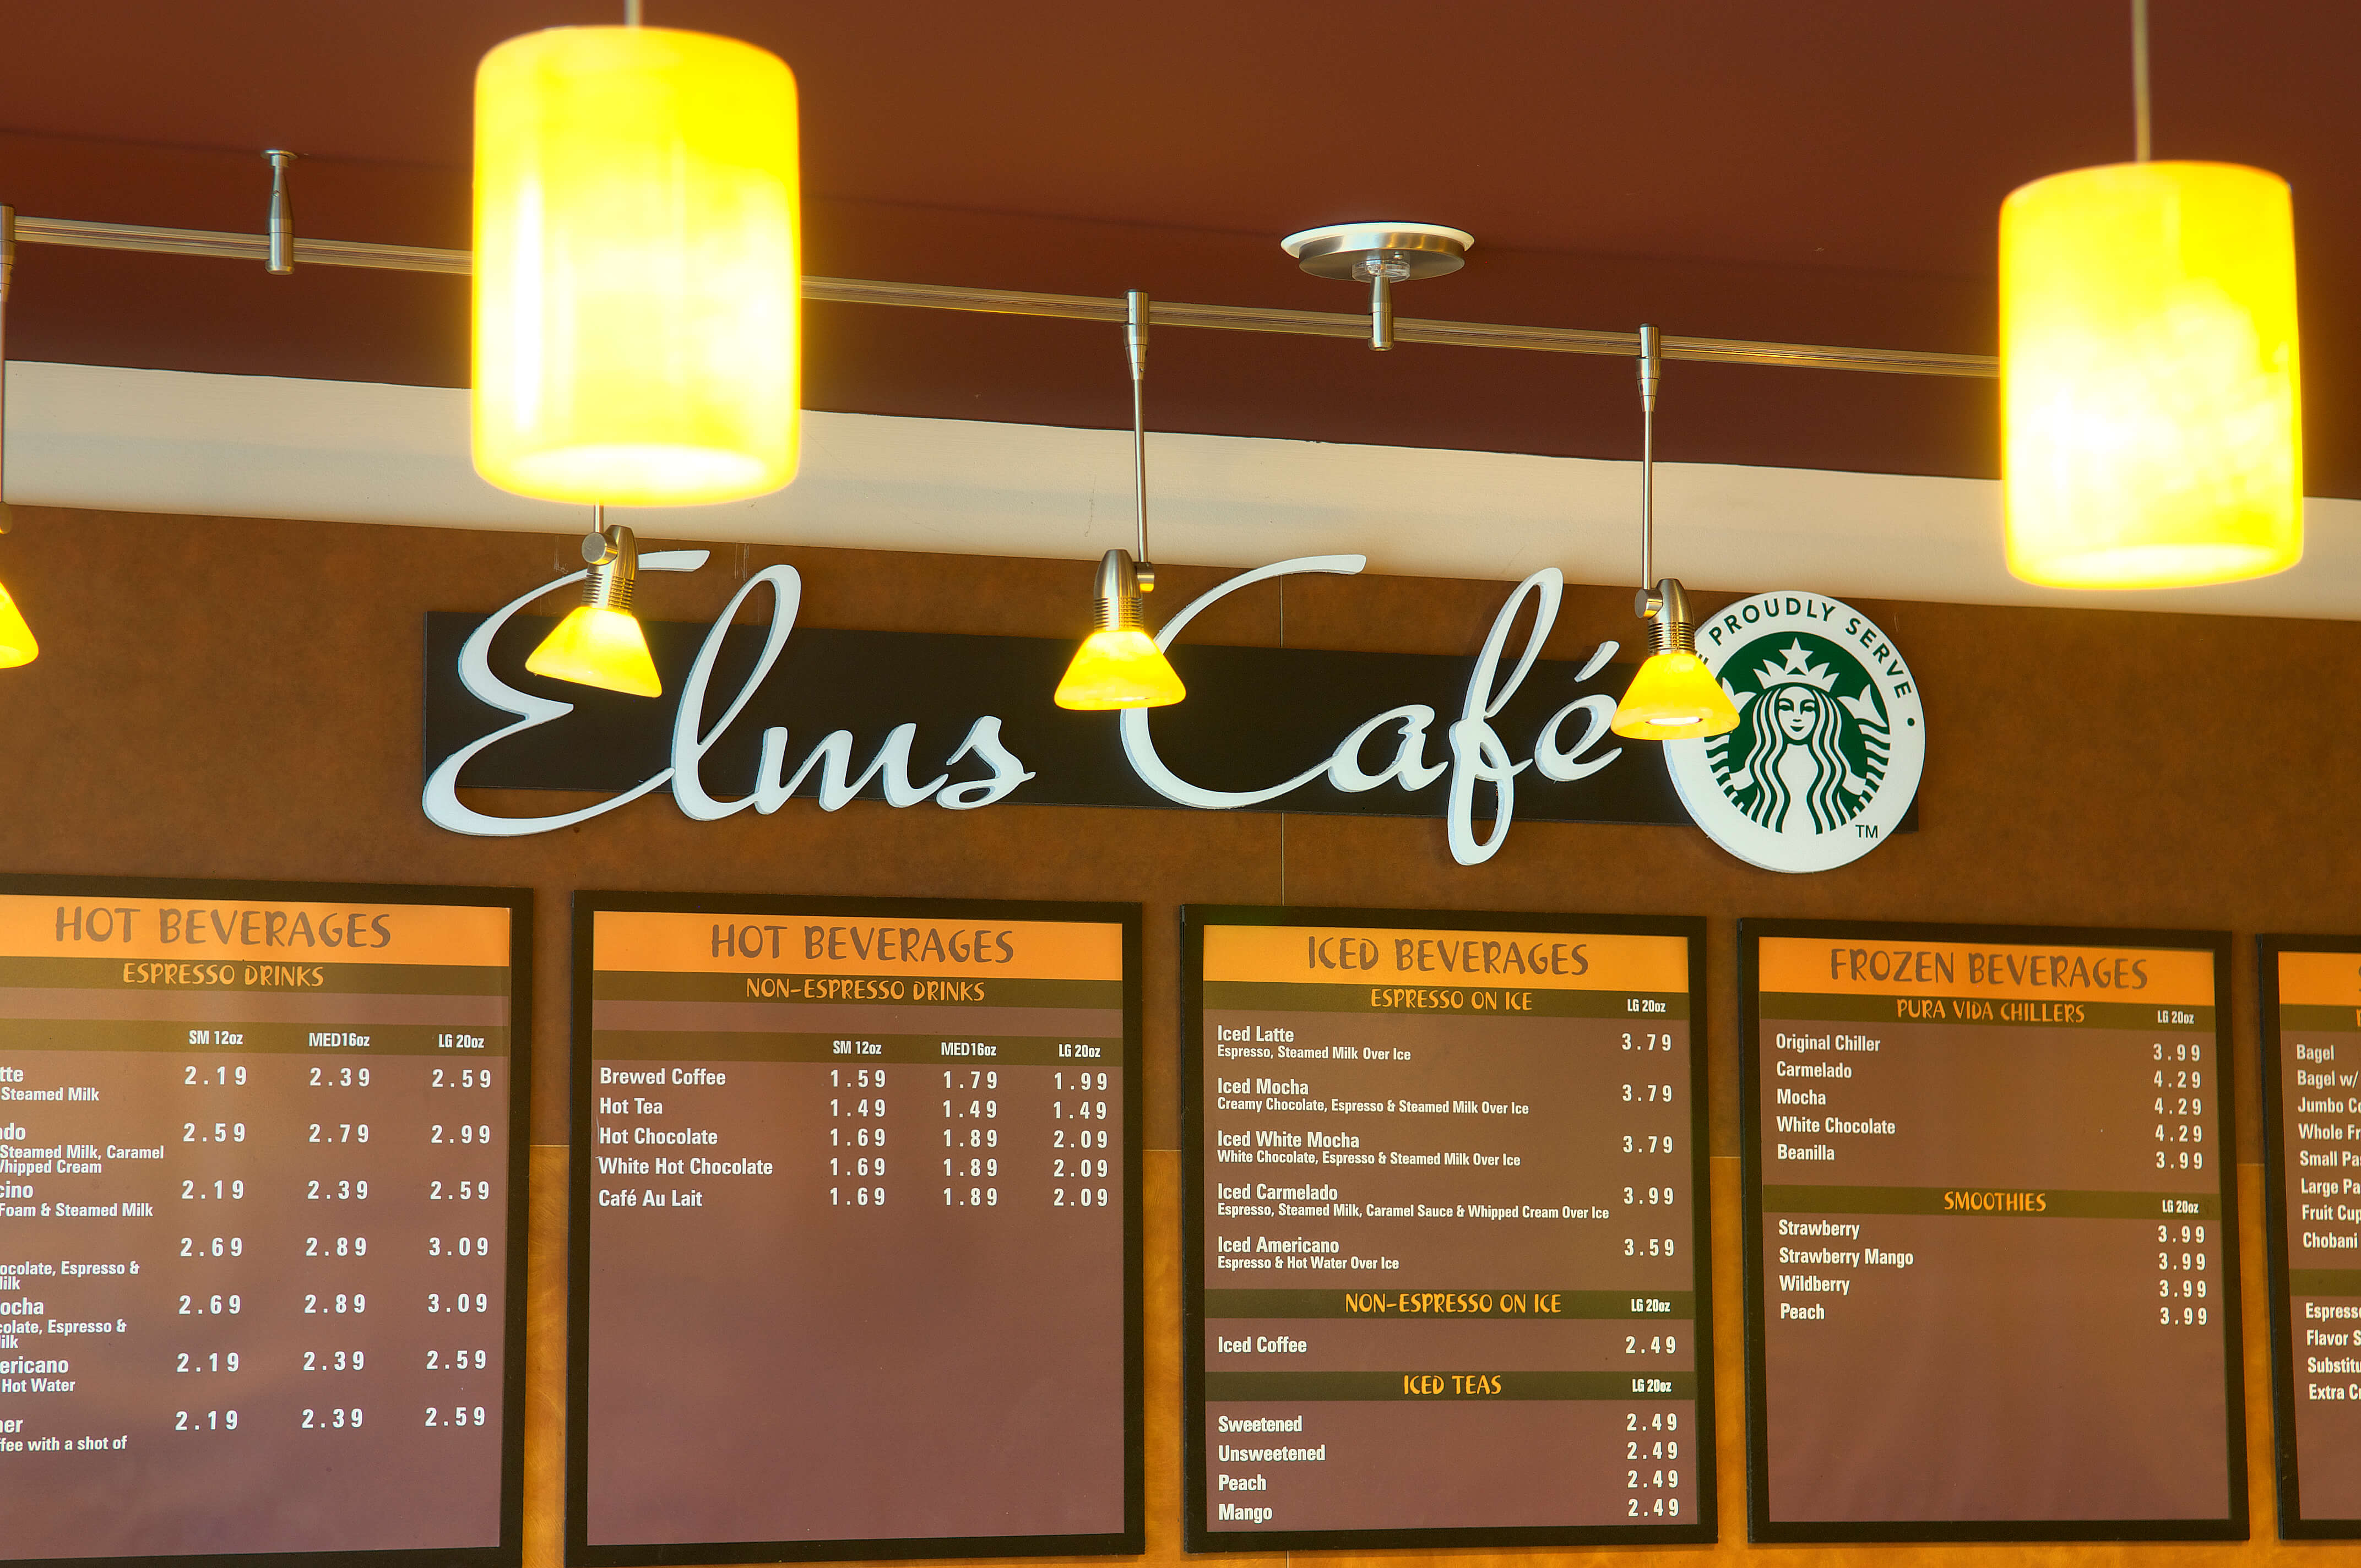 Photo of the Elms Cafe